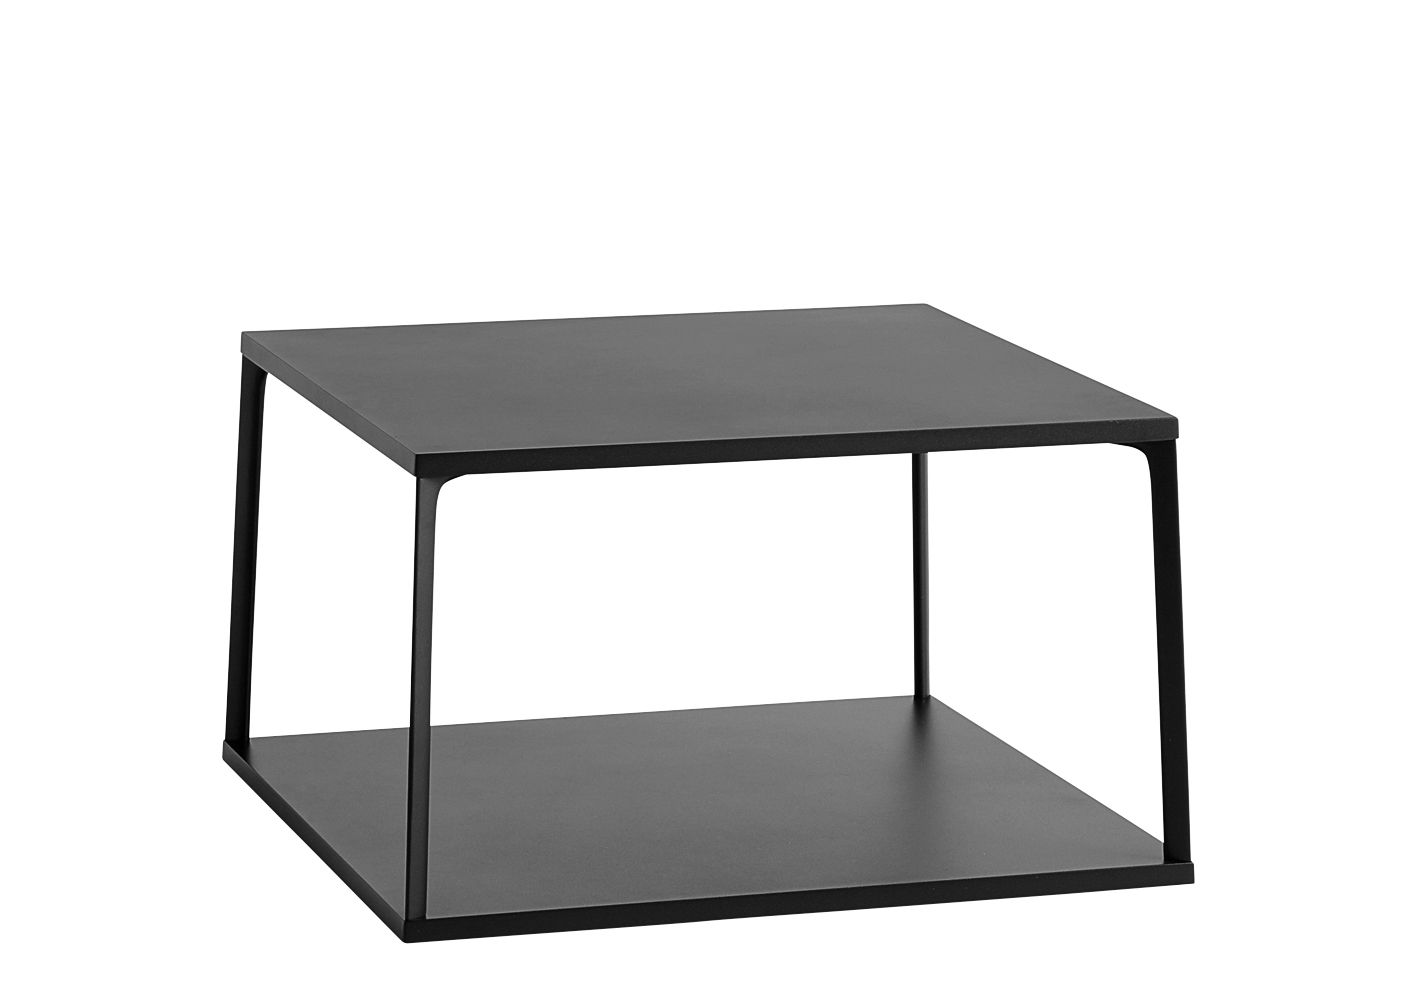 Furniture - Coffee Tables - Eiffel Coffee table - / Carré - L 65 x H 38 cm by Hay - Noir - Lacquered aluminium, Lacquered MDF